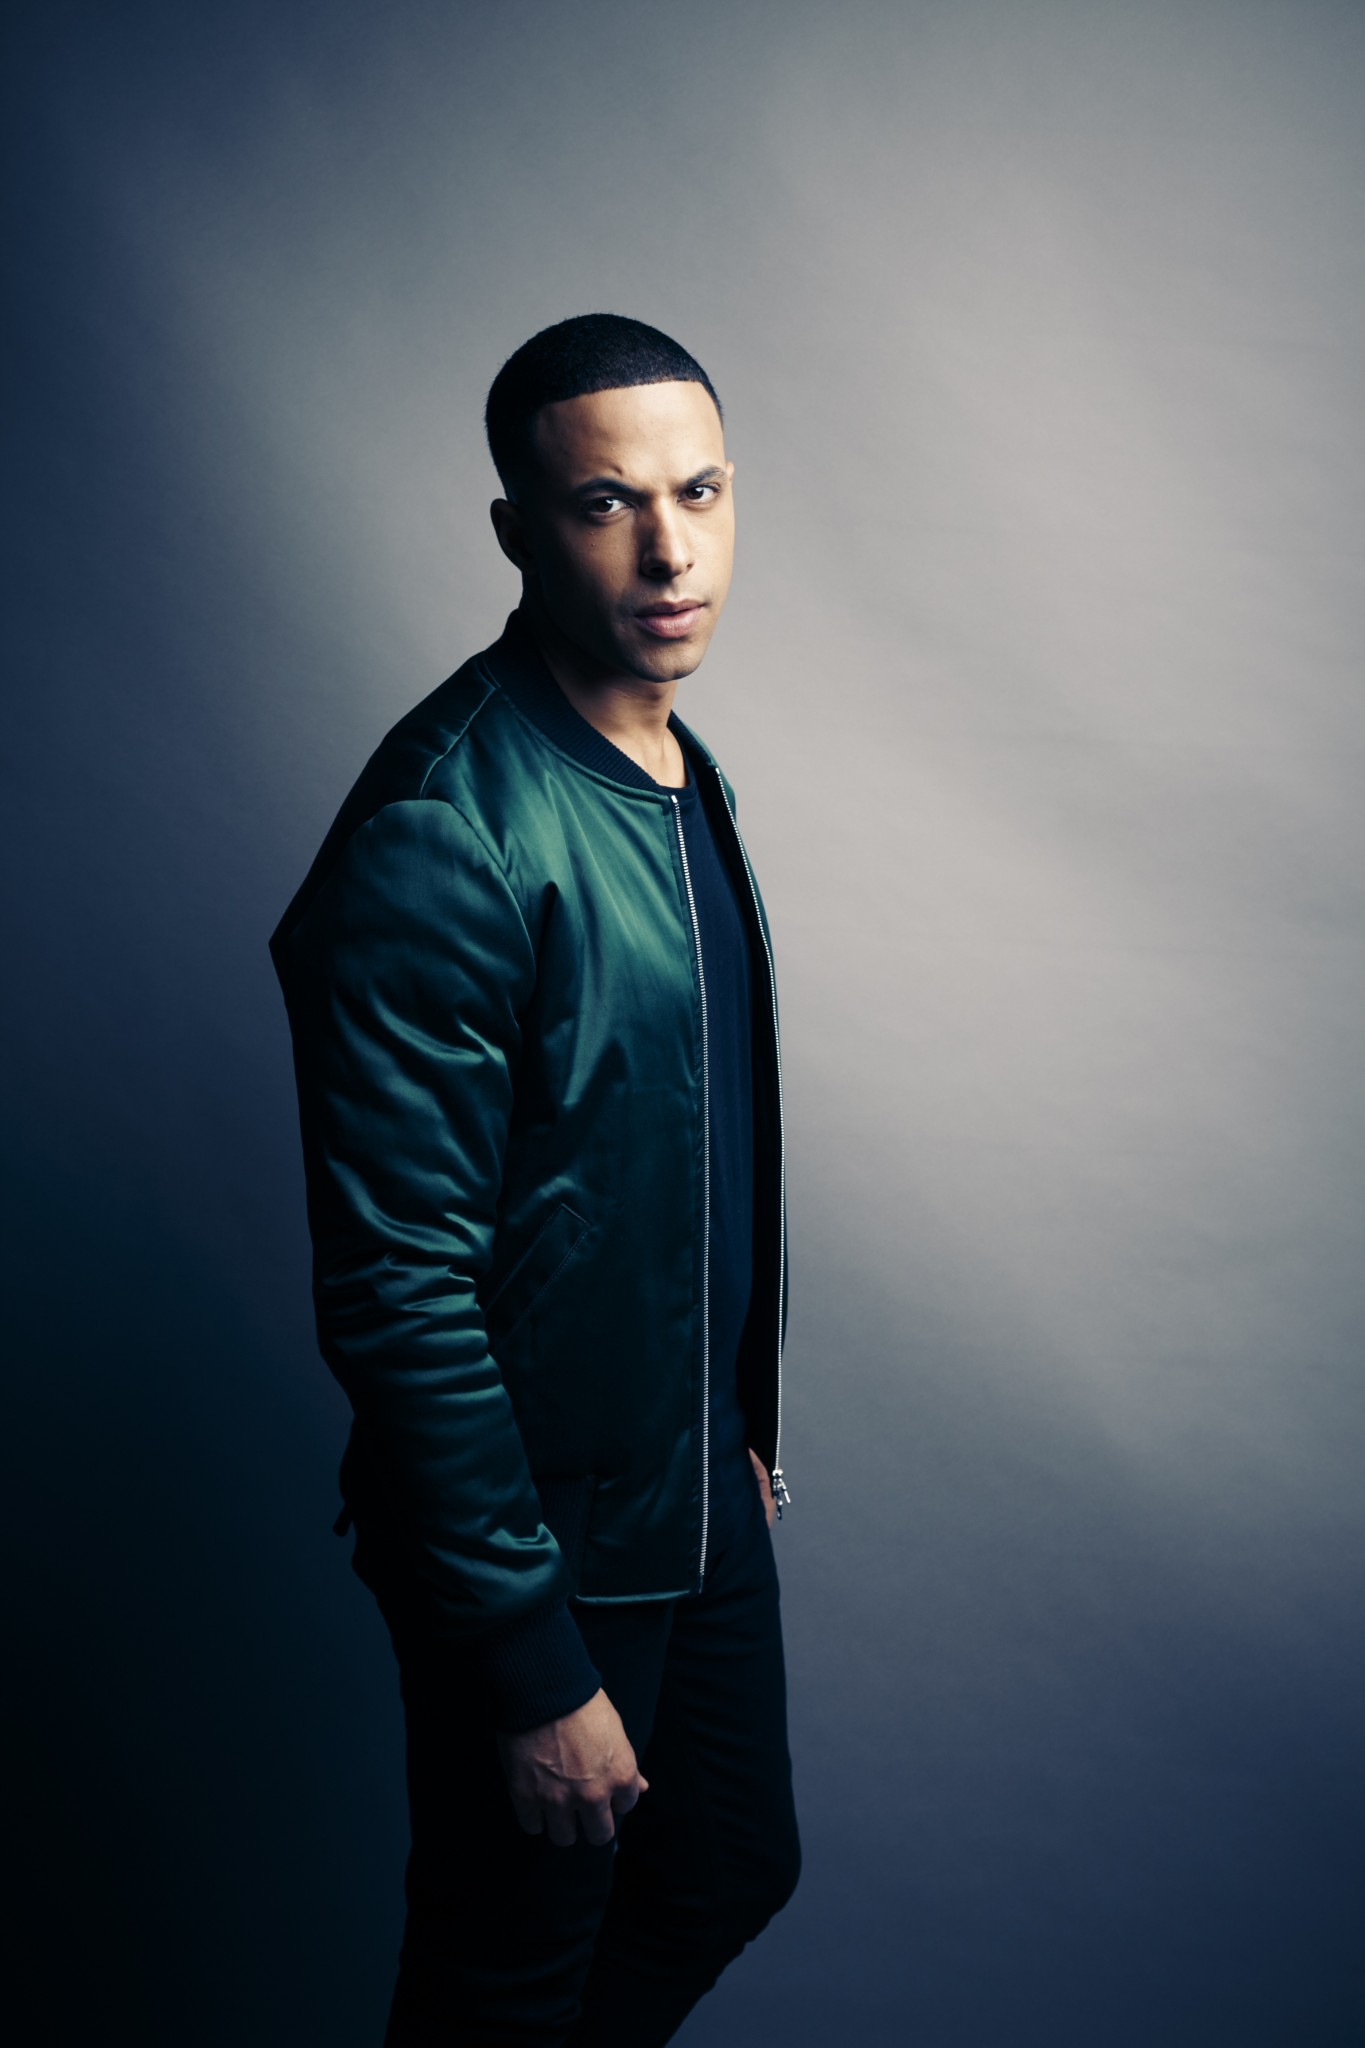 Luvbug singer Marvin Humes